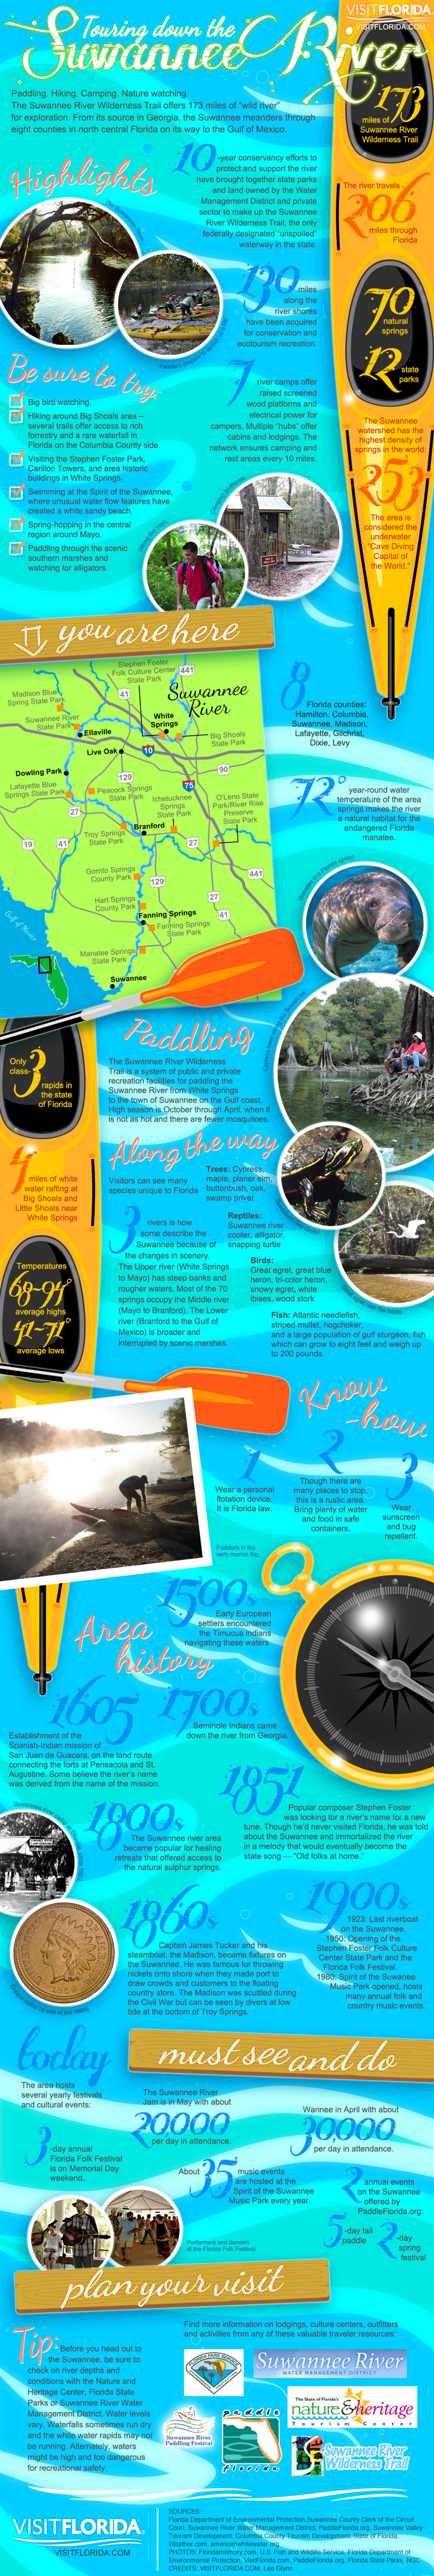 Touring down the Suwannee River (Florida) Infographic